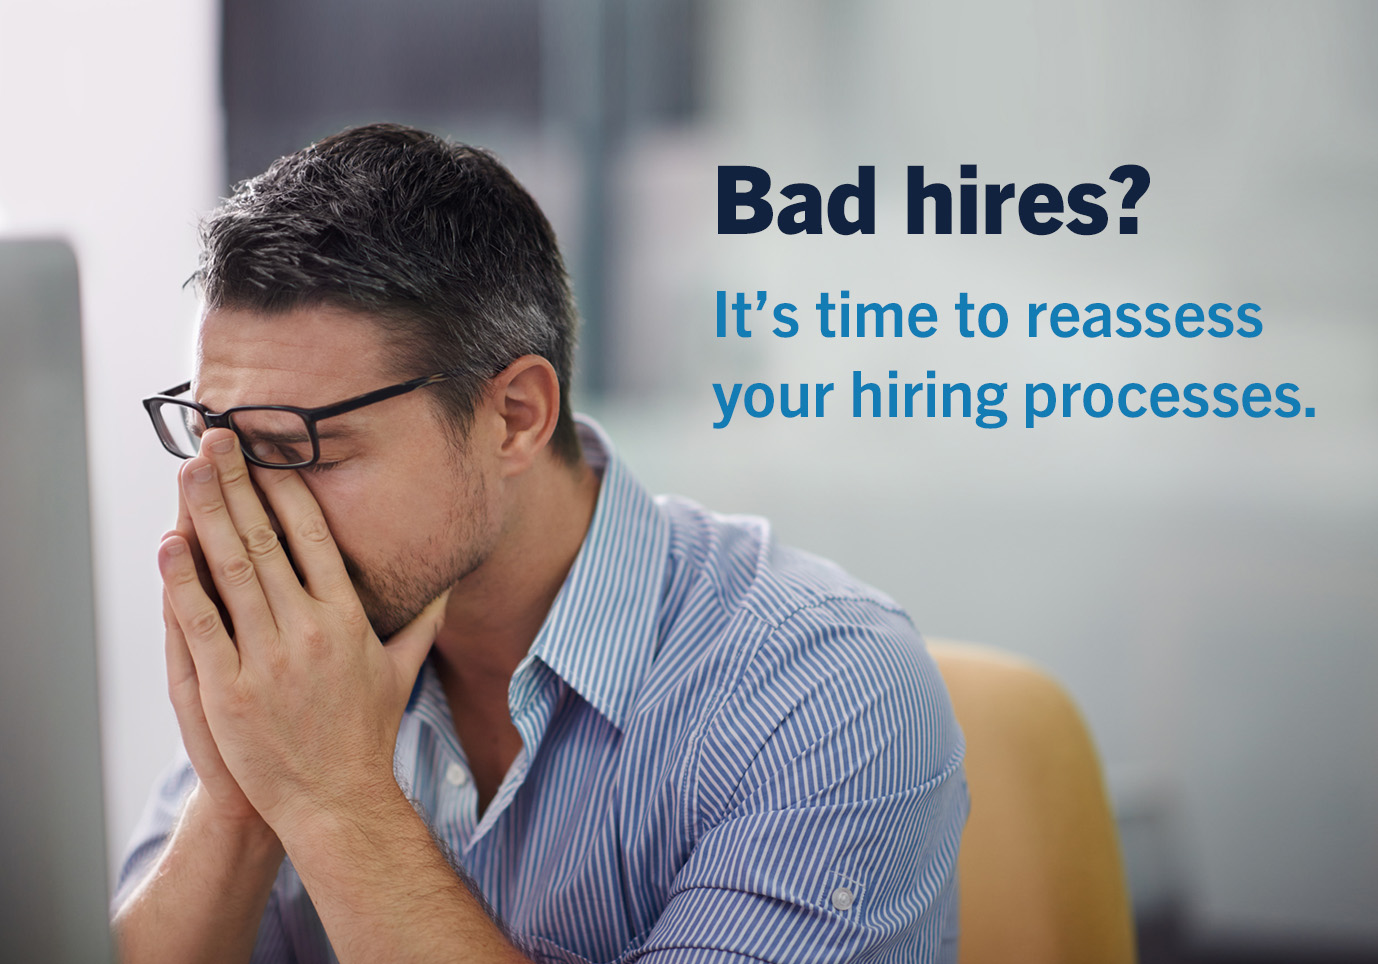 The True Cost of Bad Hires